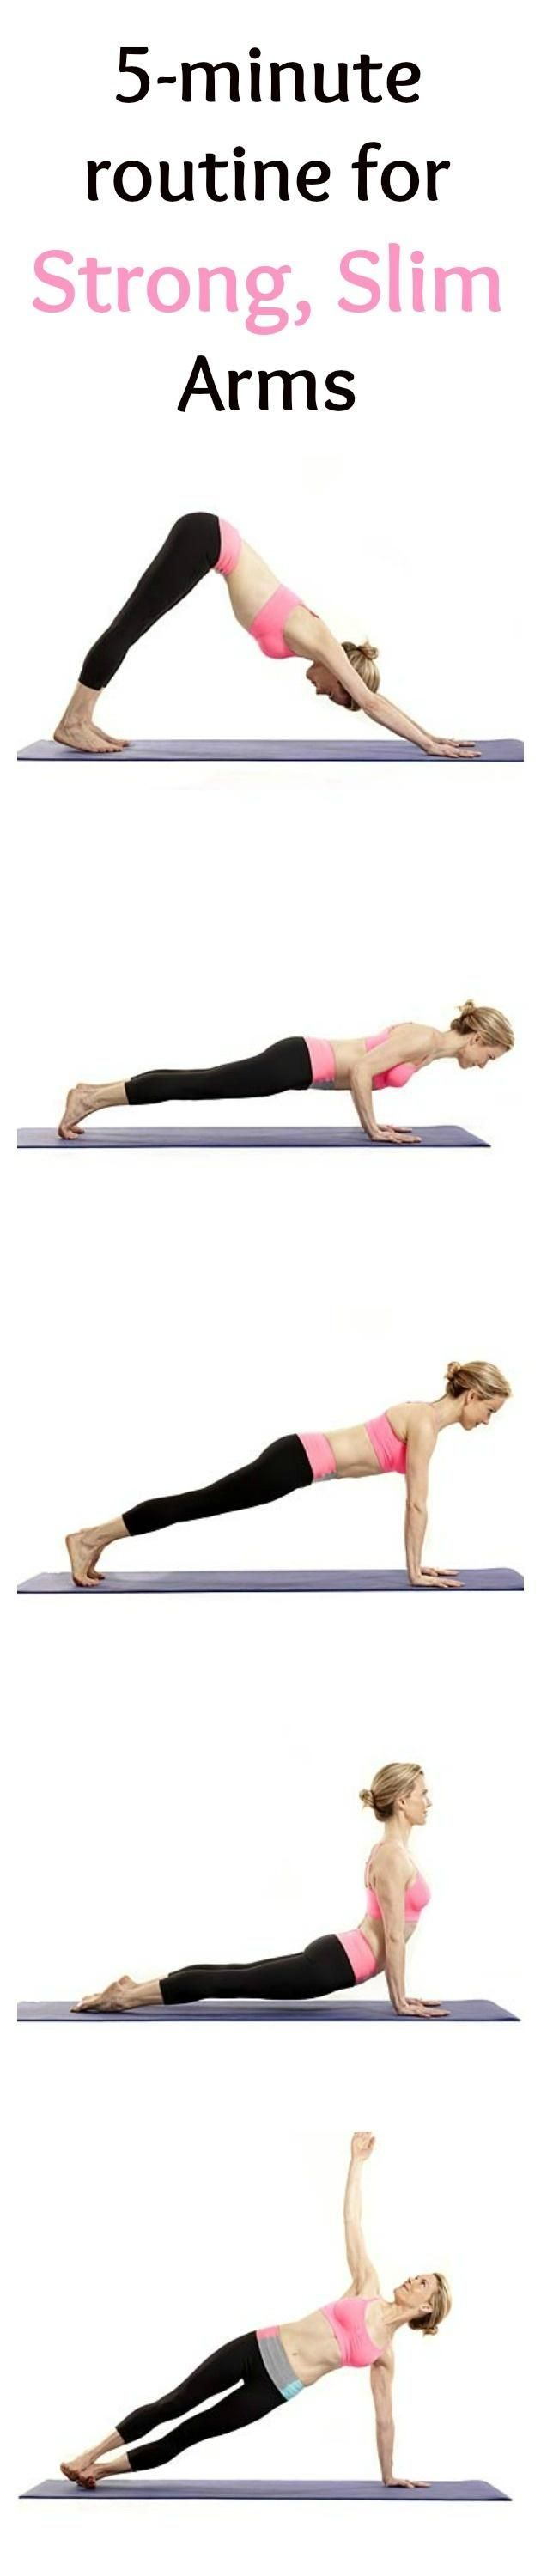 It's tank top season! Get strong, slim arms with this 5-minute yoga routine. |